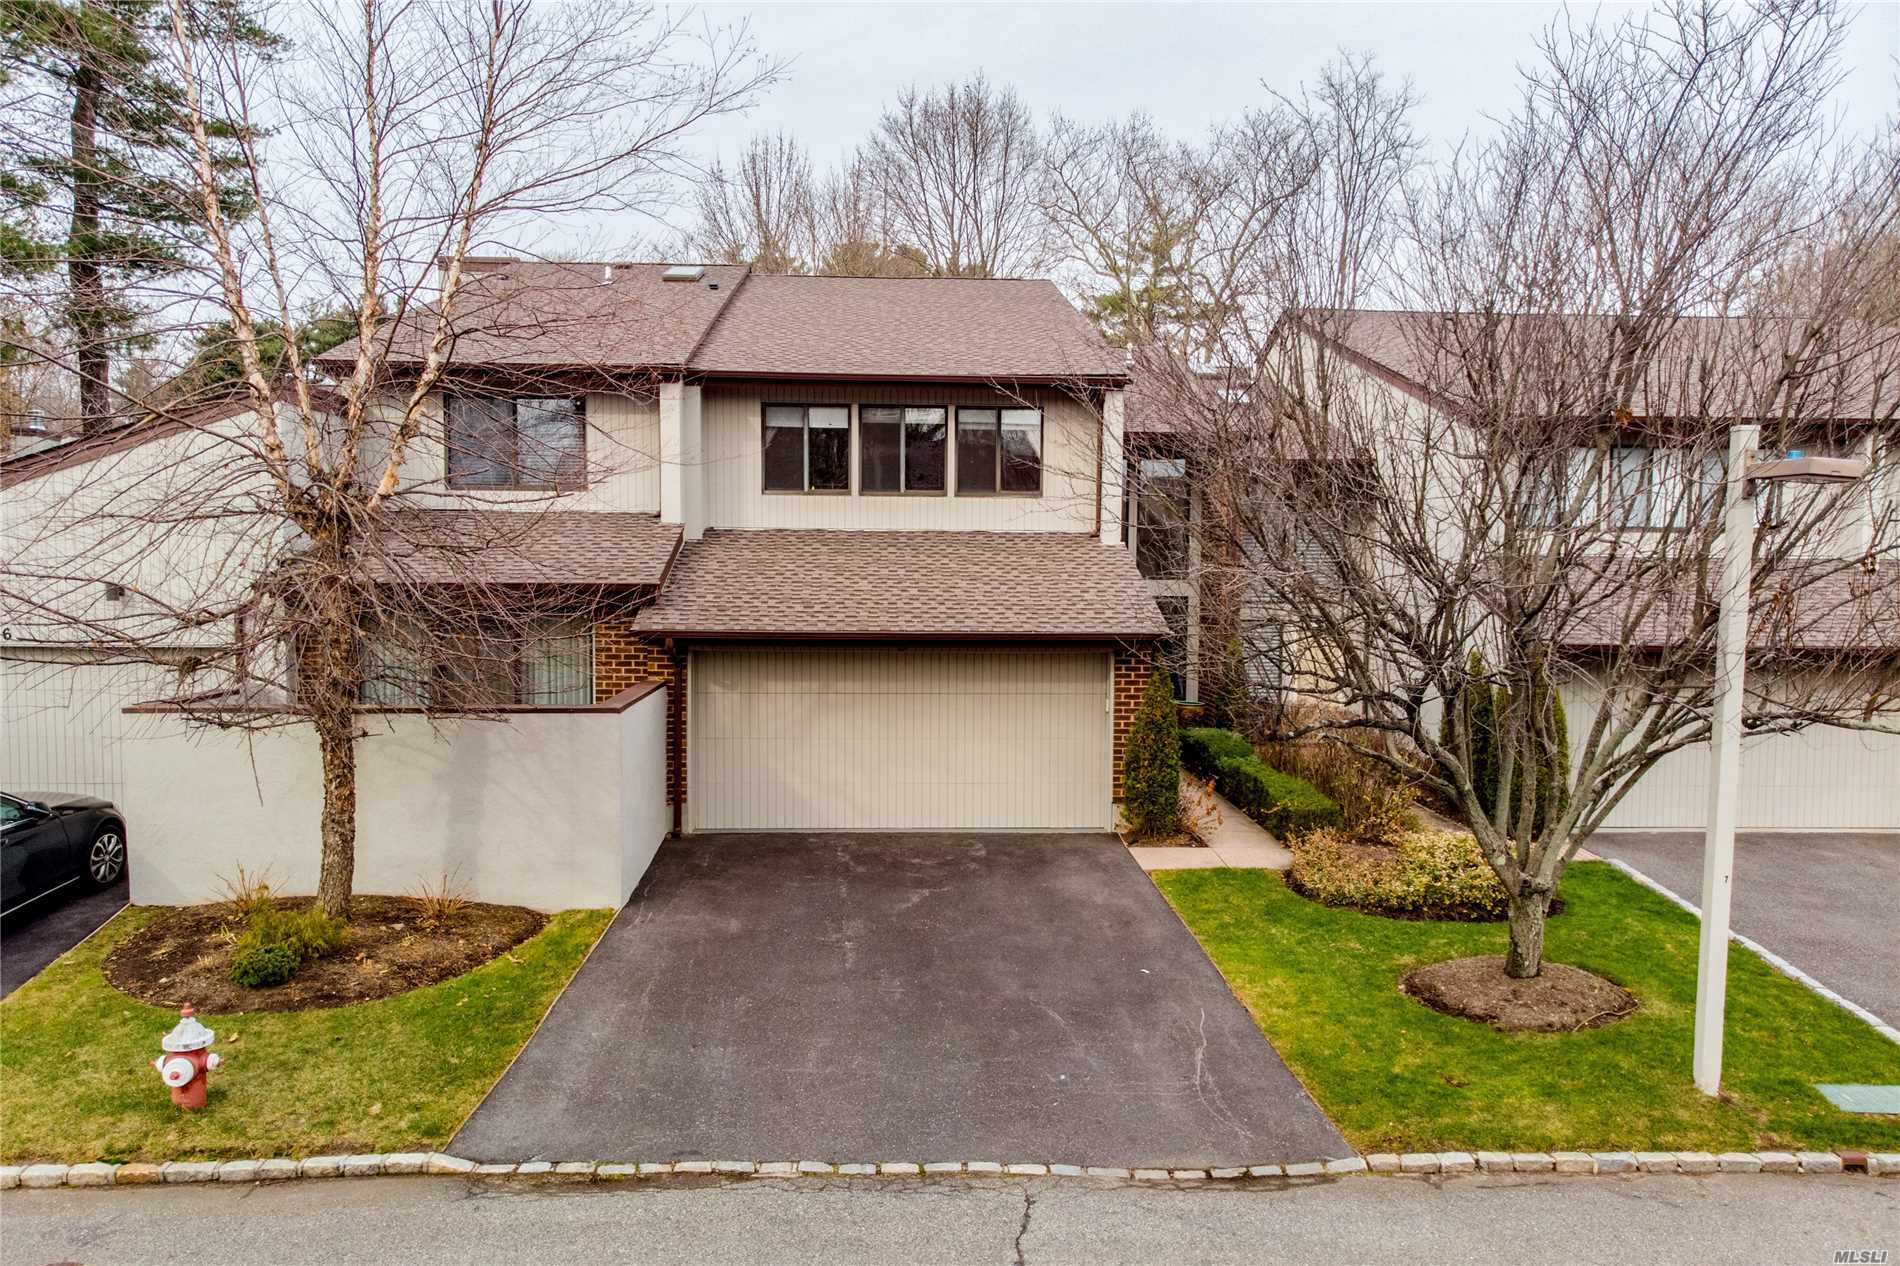 Great Location! Next To Club House And All Amenities. Master Bdrms Facing South And Gets A Lot Of Sunlight, Two Bdrms, Living Rm And Family Rm All Have Views Of Pond. Large Deck, Two Garages, 24 Hr Guard.